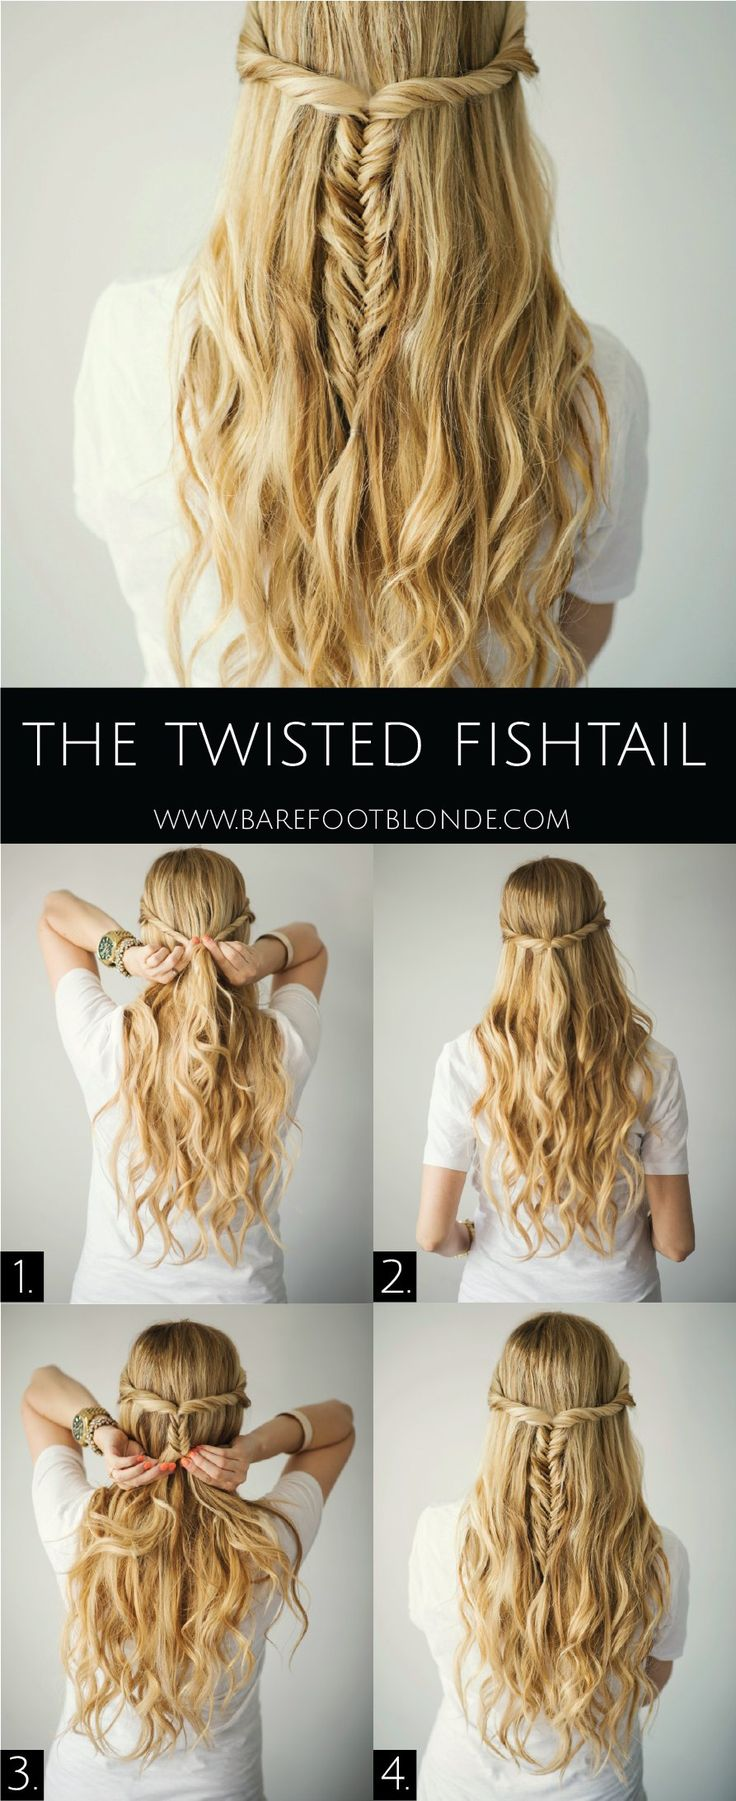 The Twisted Fishtail Hair Tutorial - Barefoot Blonde